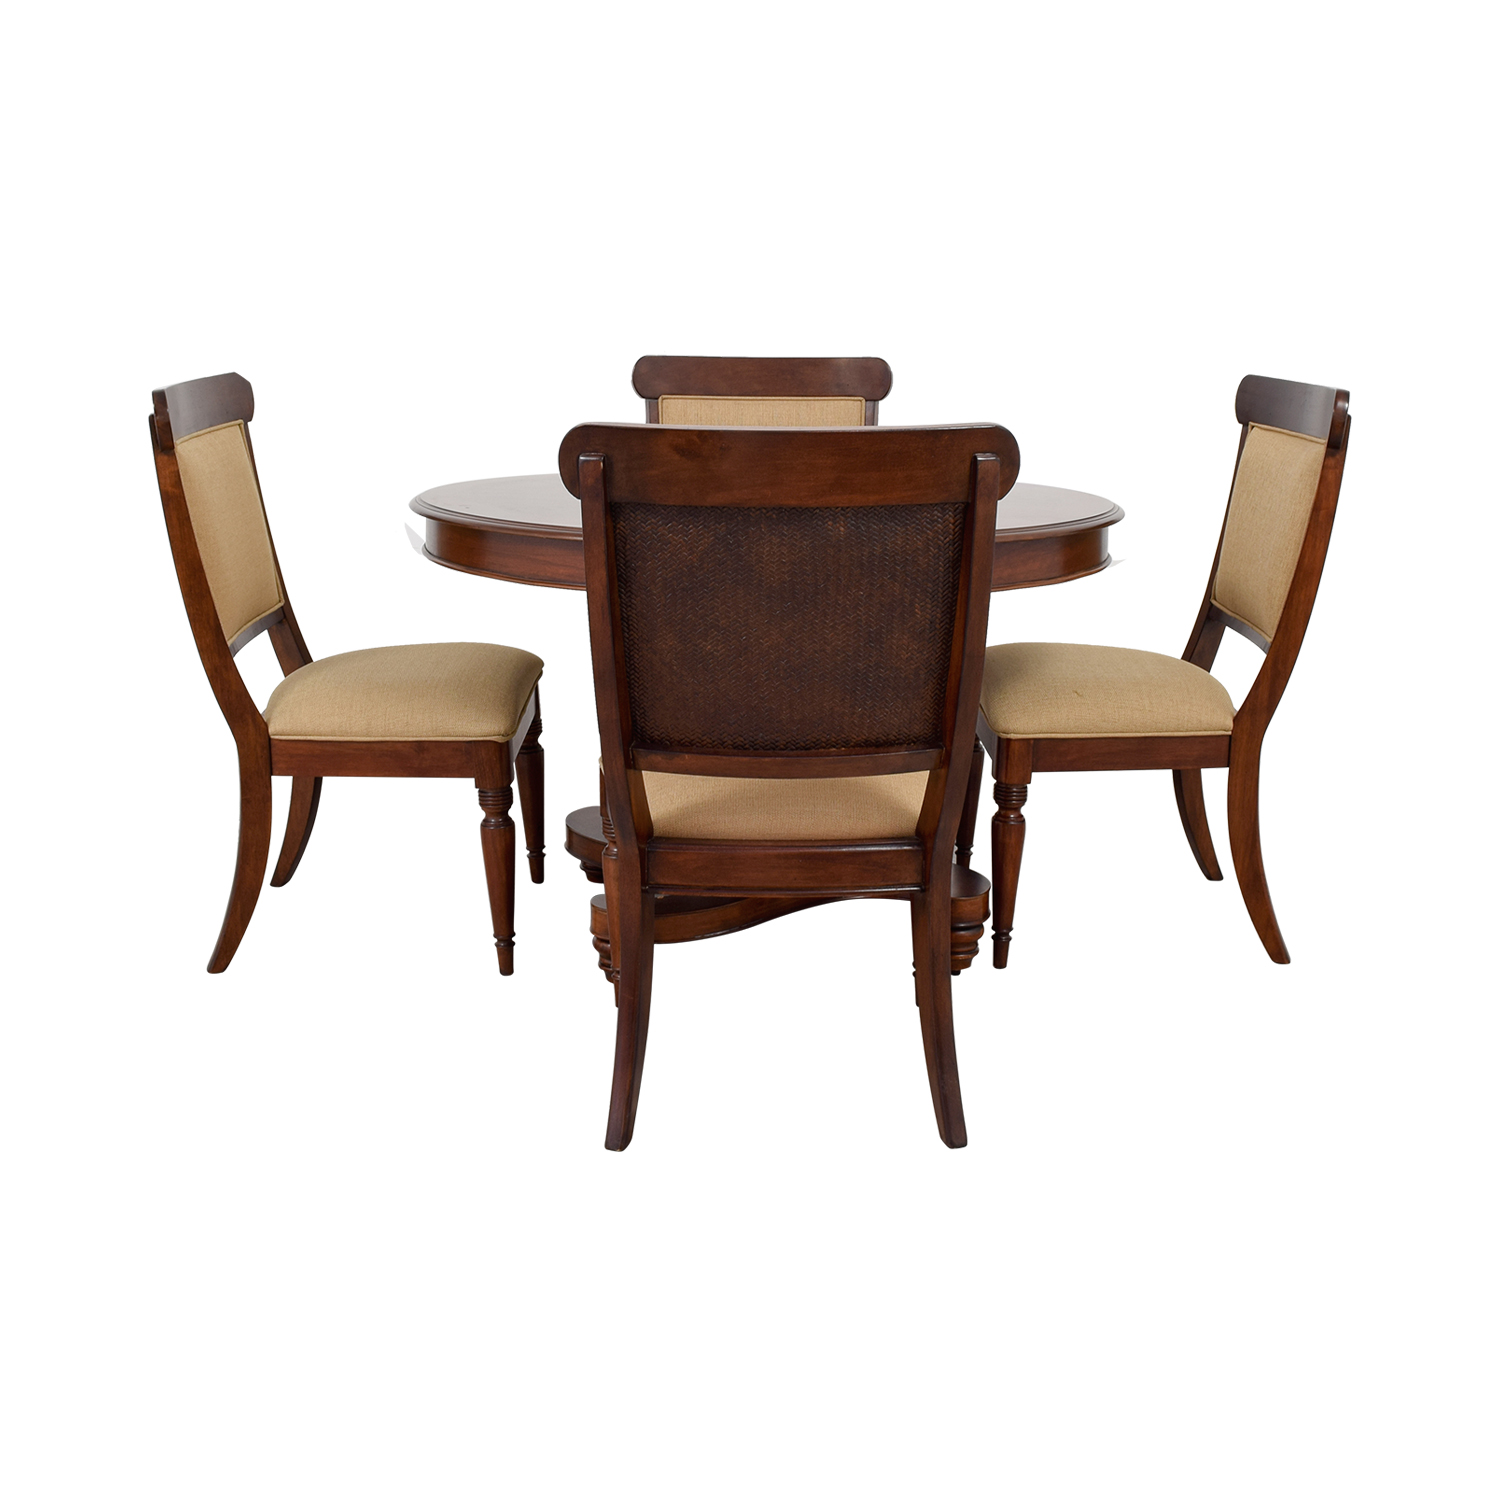 Macy's Macy's Wood Extendable Dining Set with Upholstered Chairs dimensions